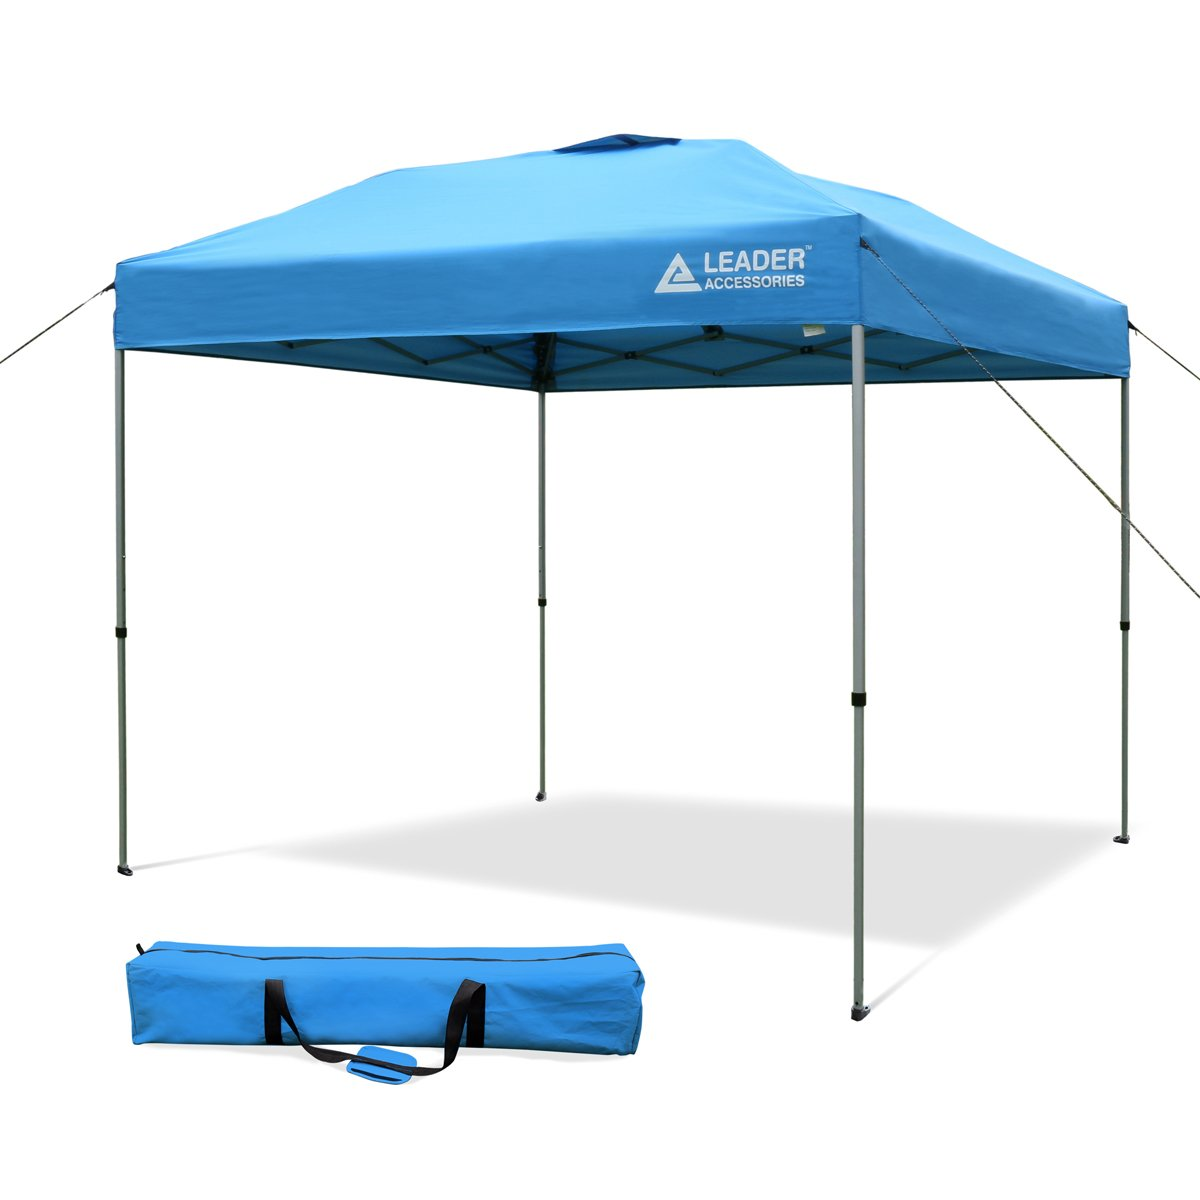 Leader Accessories 8 x 8 Straight Wall Instant Canopy with Carry Bag Blue